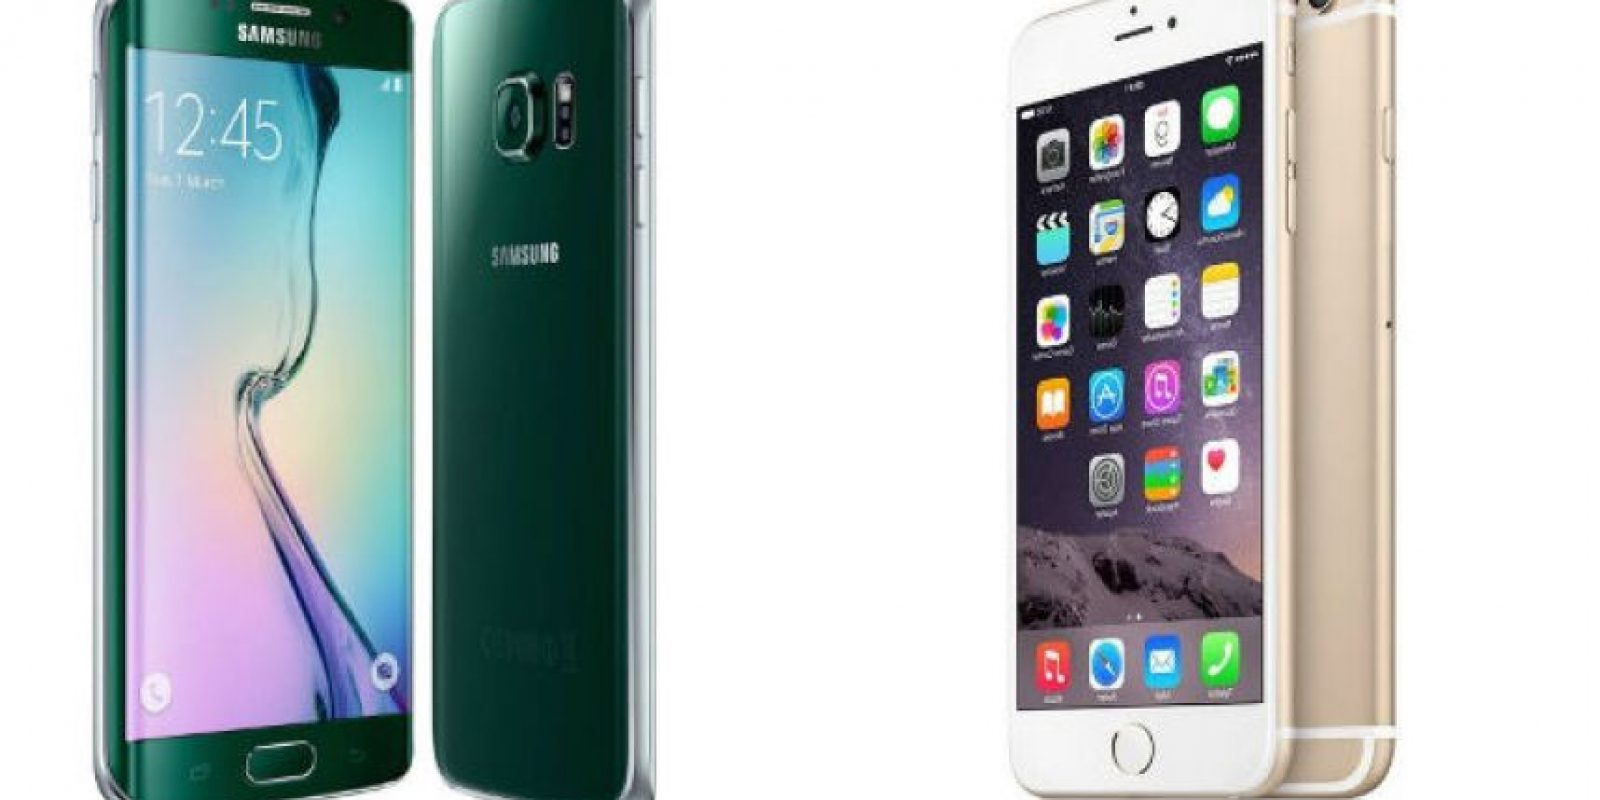 Samsung Galaxy S6 Edge quiere pelear el reinado del iPhone 6 Plus. Foto: Samsung / Apple